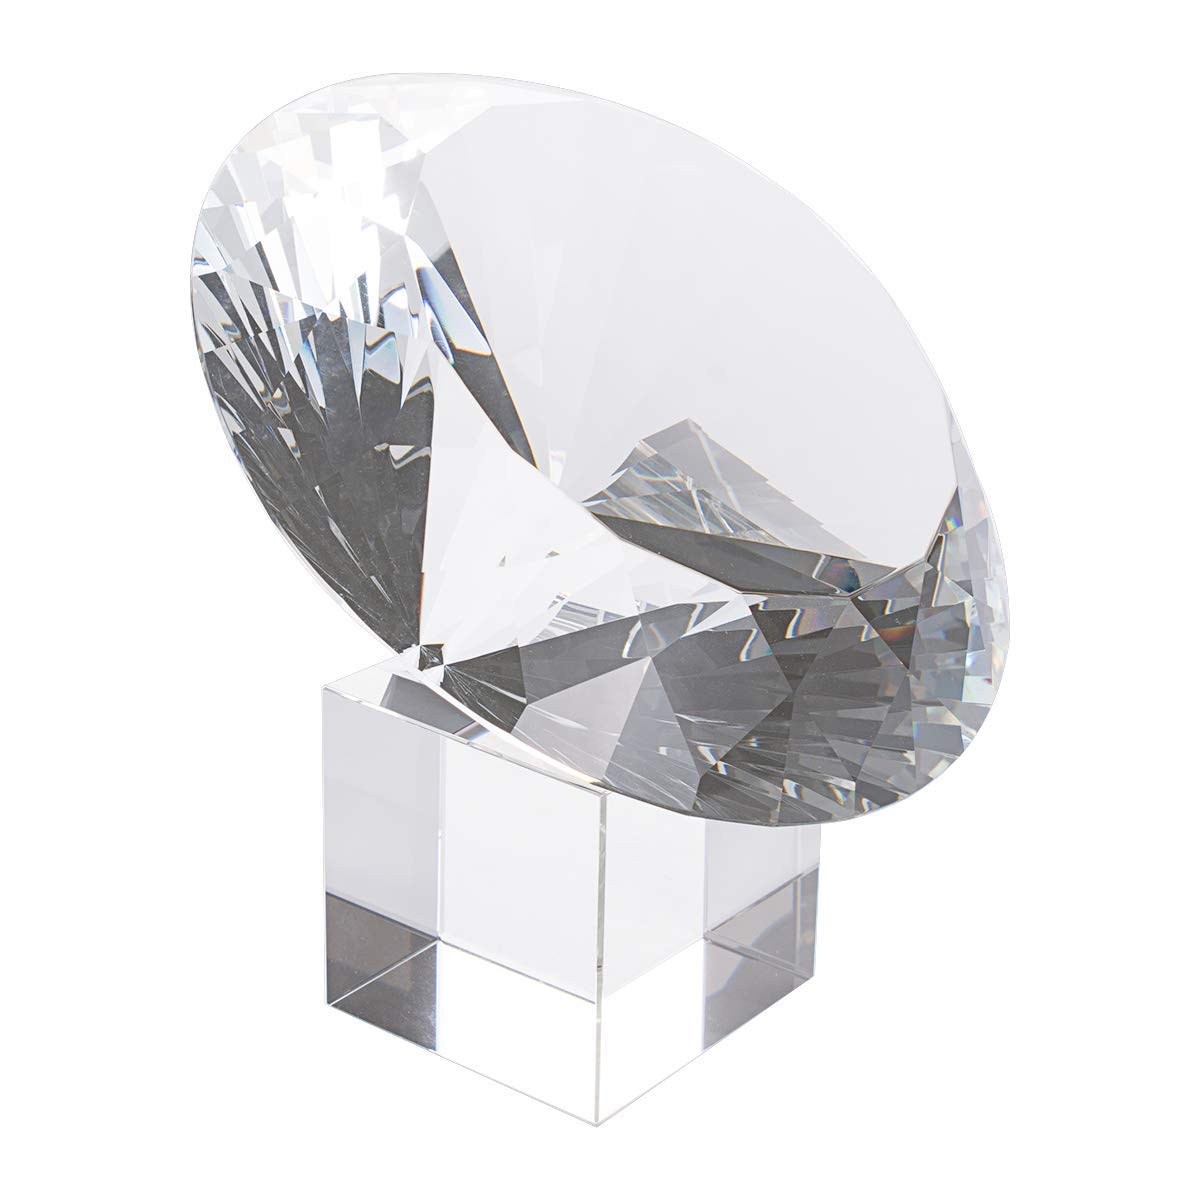 LONGWIN Huge 150mm (5.9 in.) Crystal Polyhedron Diamond Paperweight Wedding Home Decoration Centerpieces(Clear) by LONGWIN